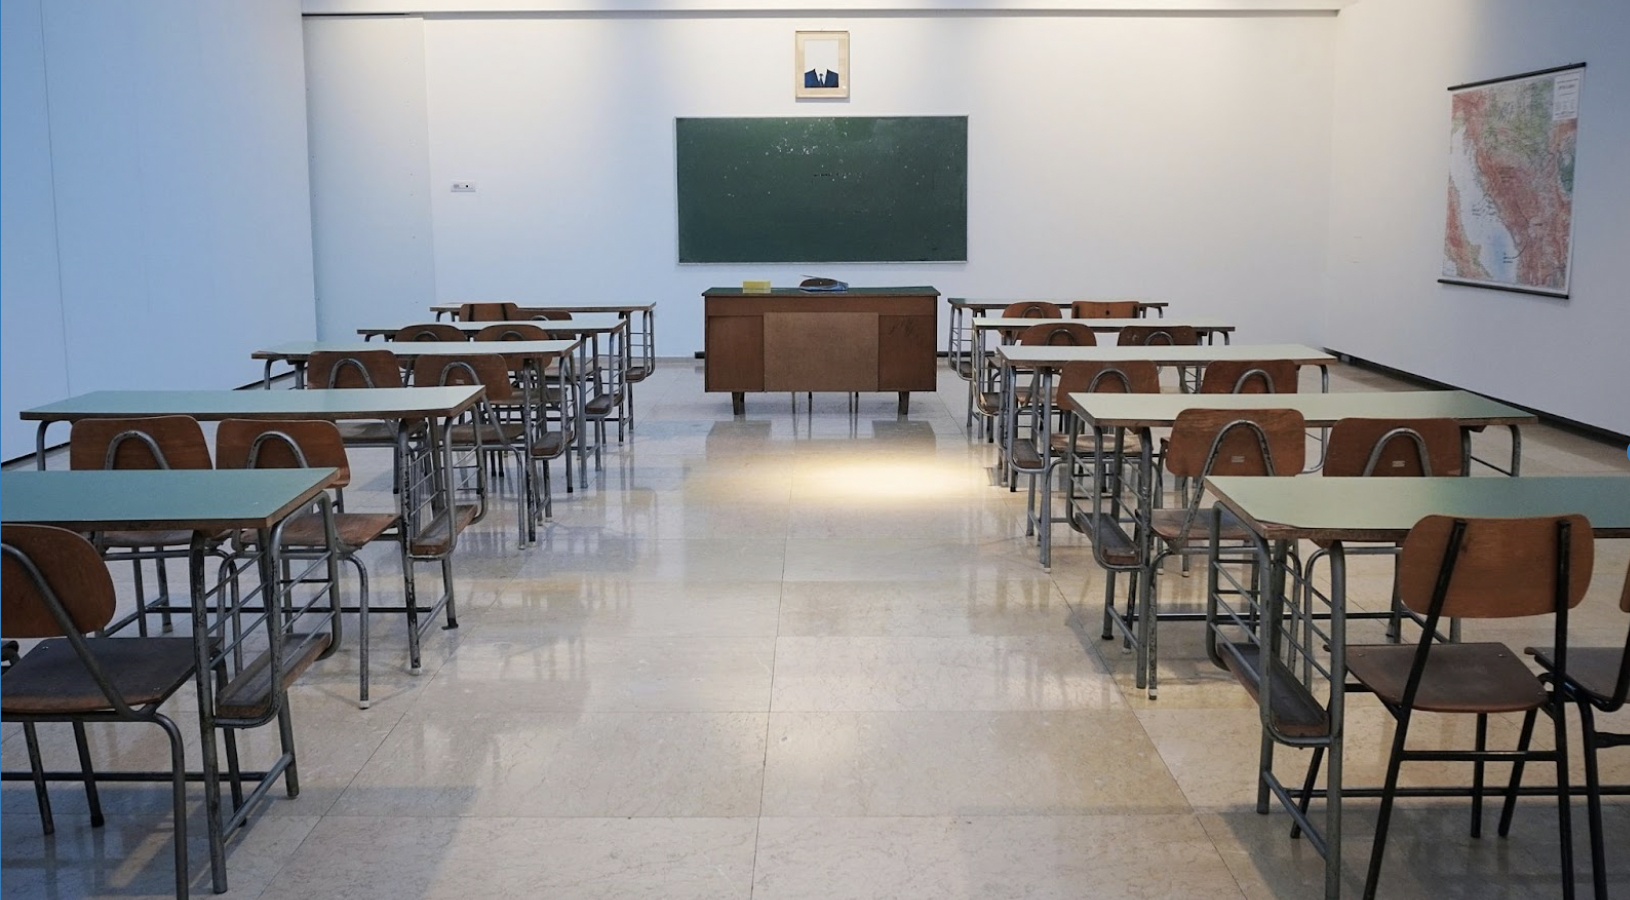 How The Pandemic Has Impacted Students